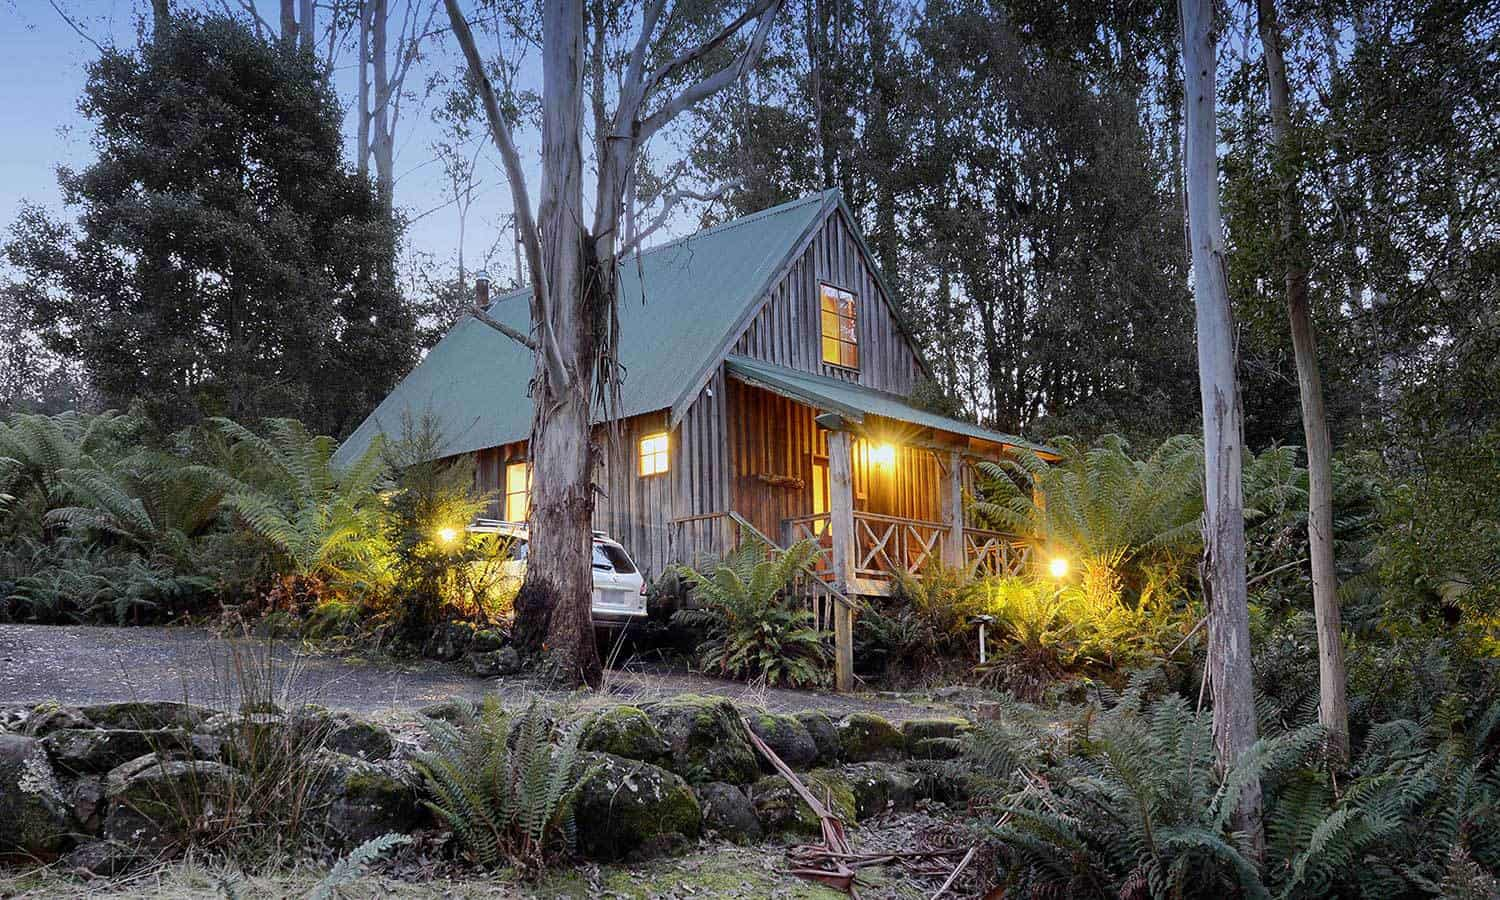 Self Contained accommodation cradle mountain tasmania